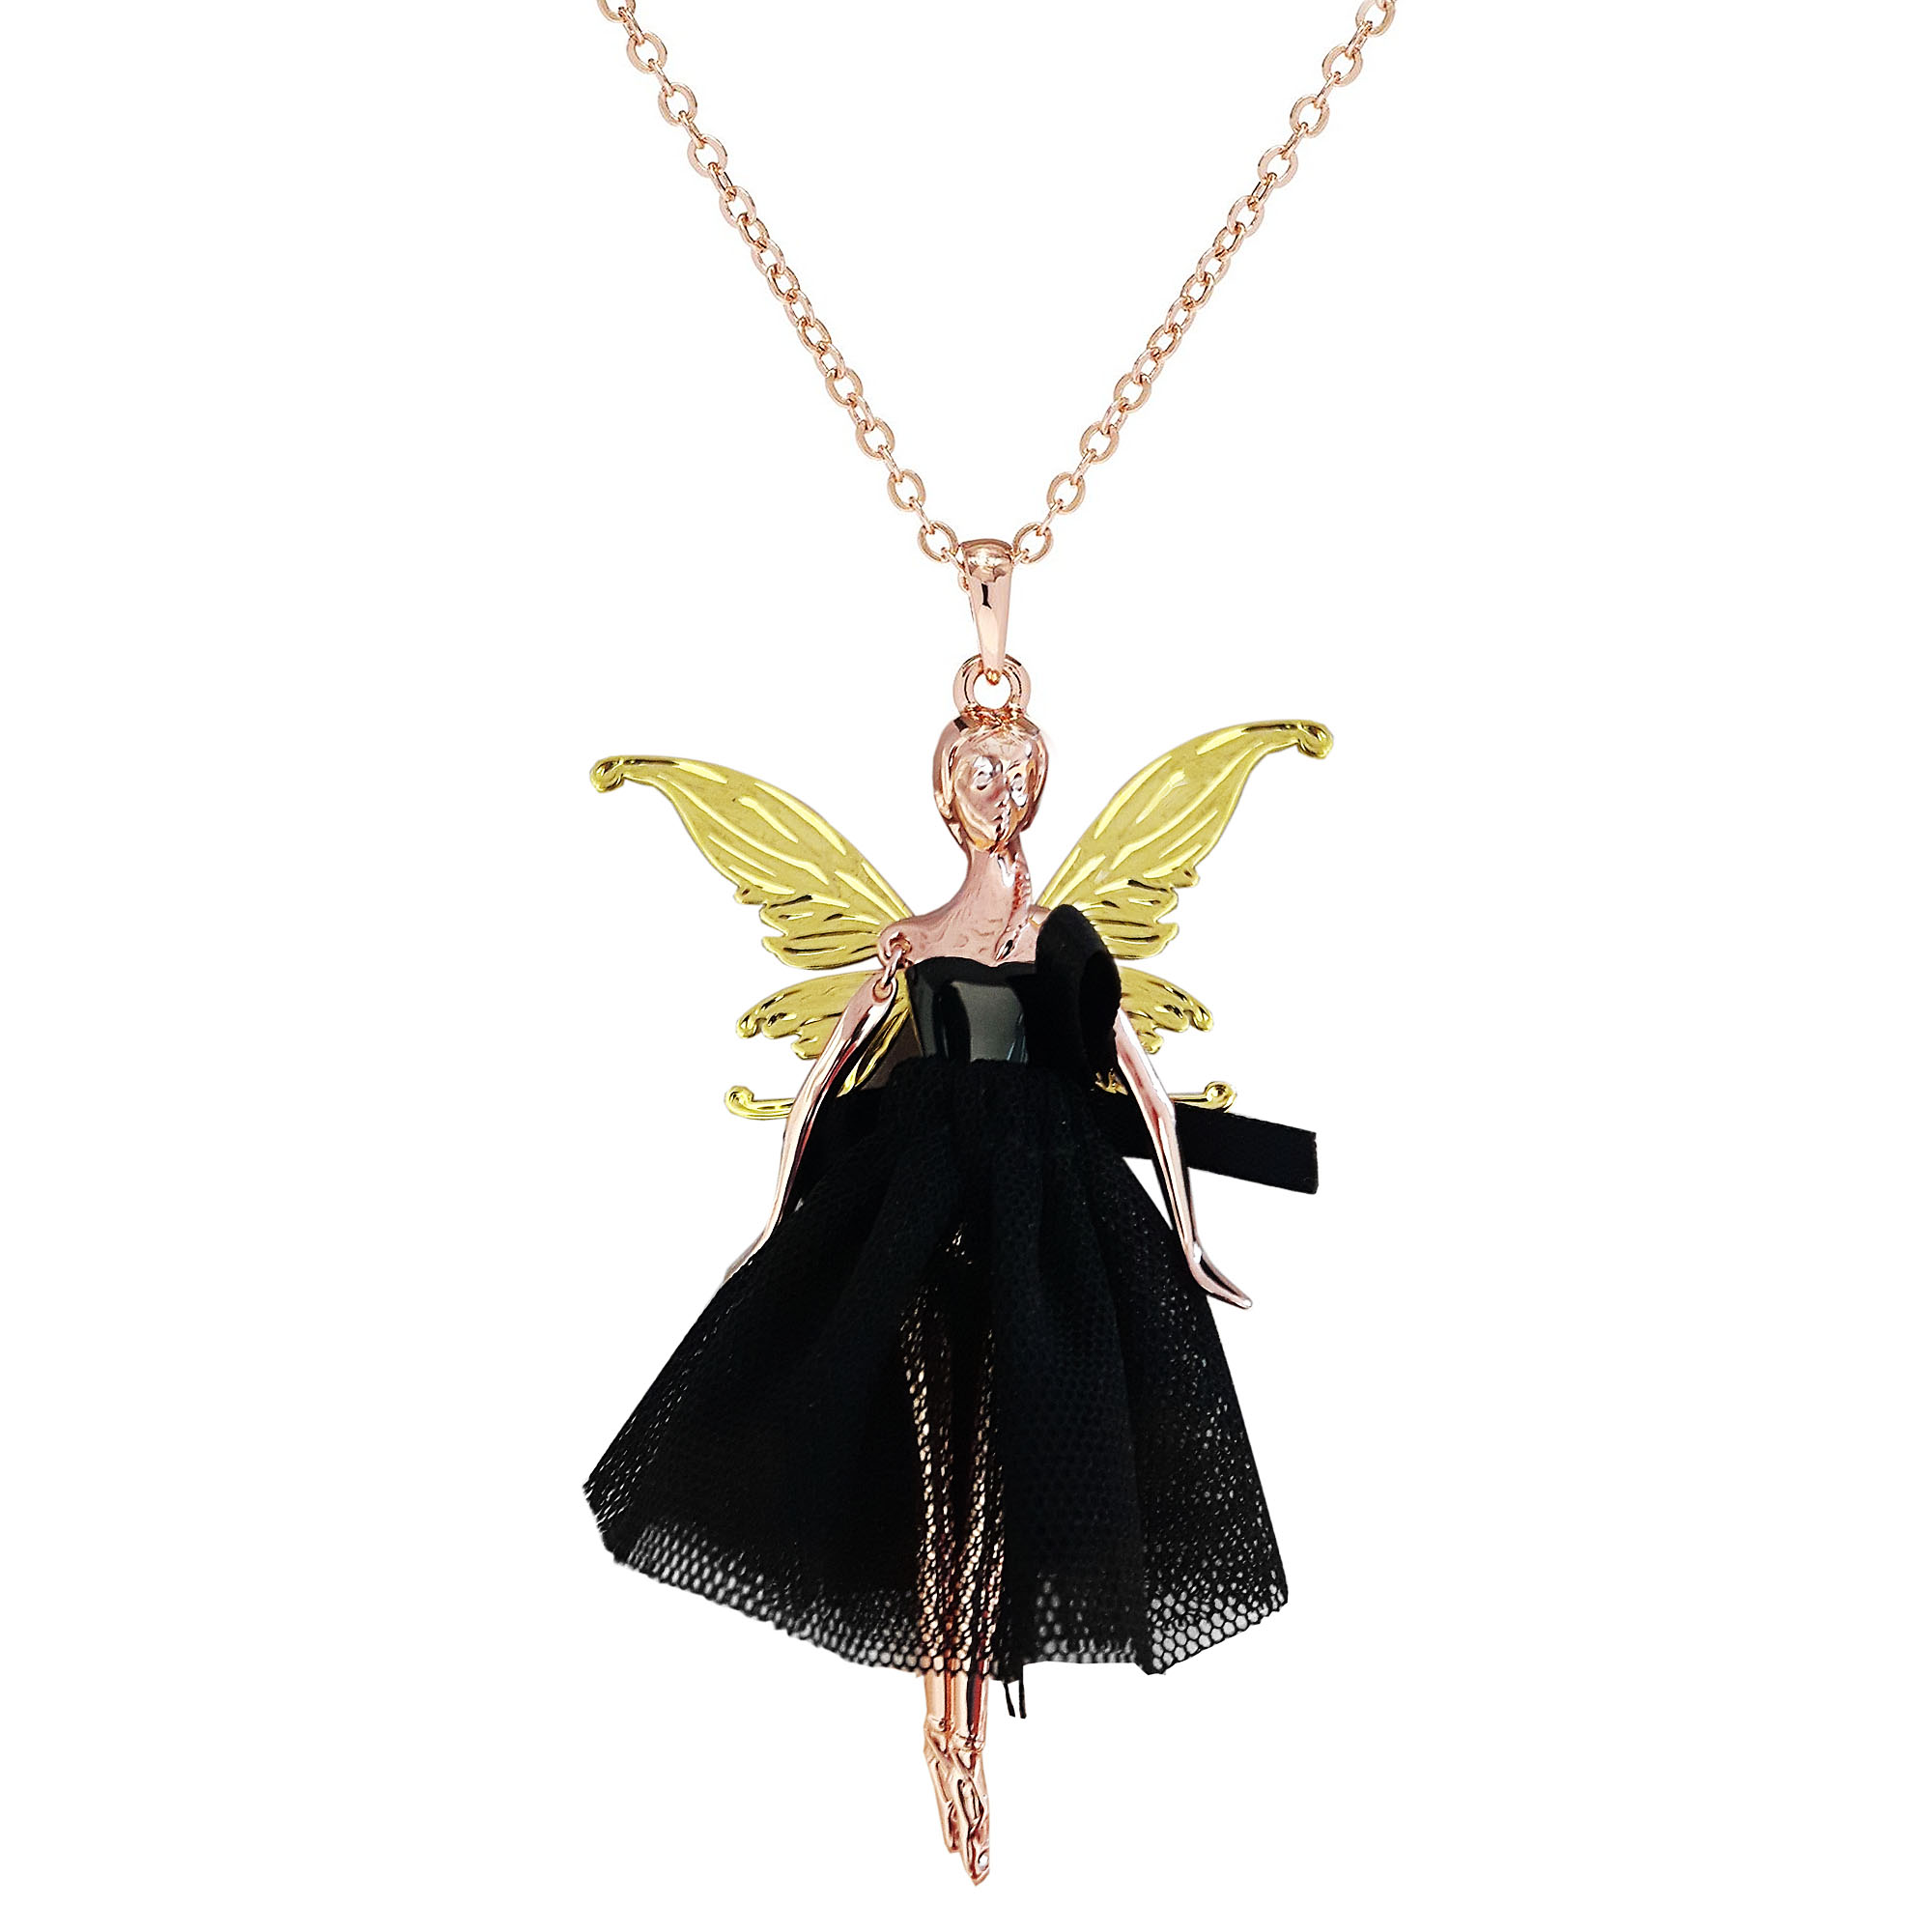 original online hf angelsvisions products img kittyworks fairy jewelry necklace collections hummingbird